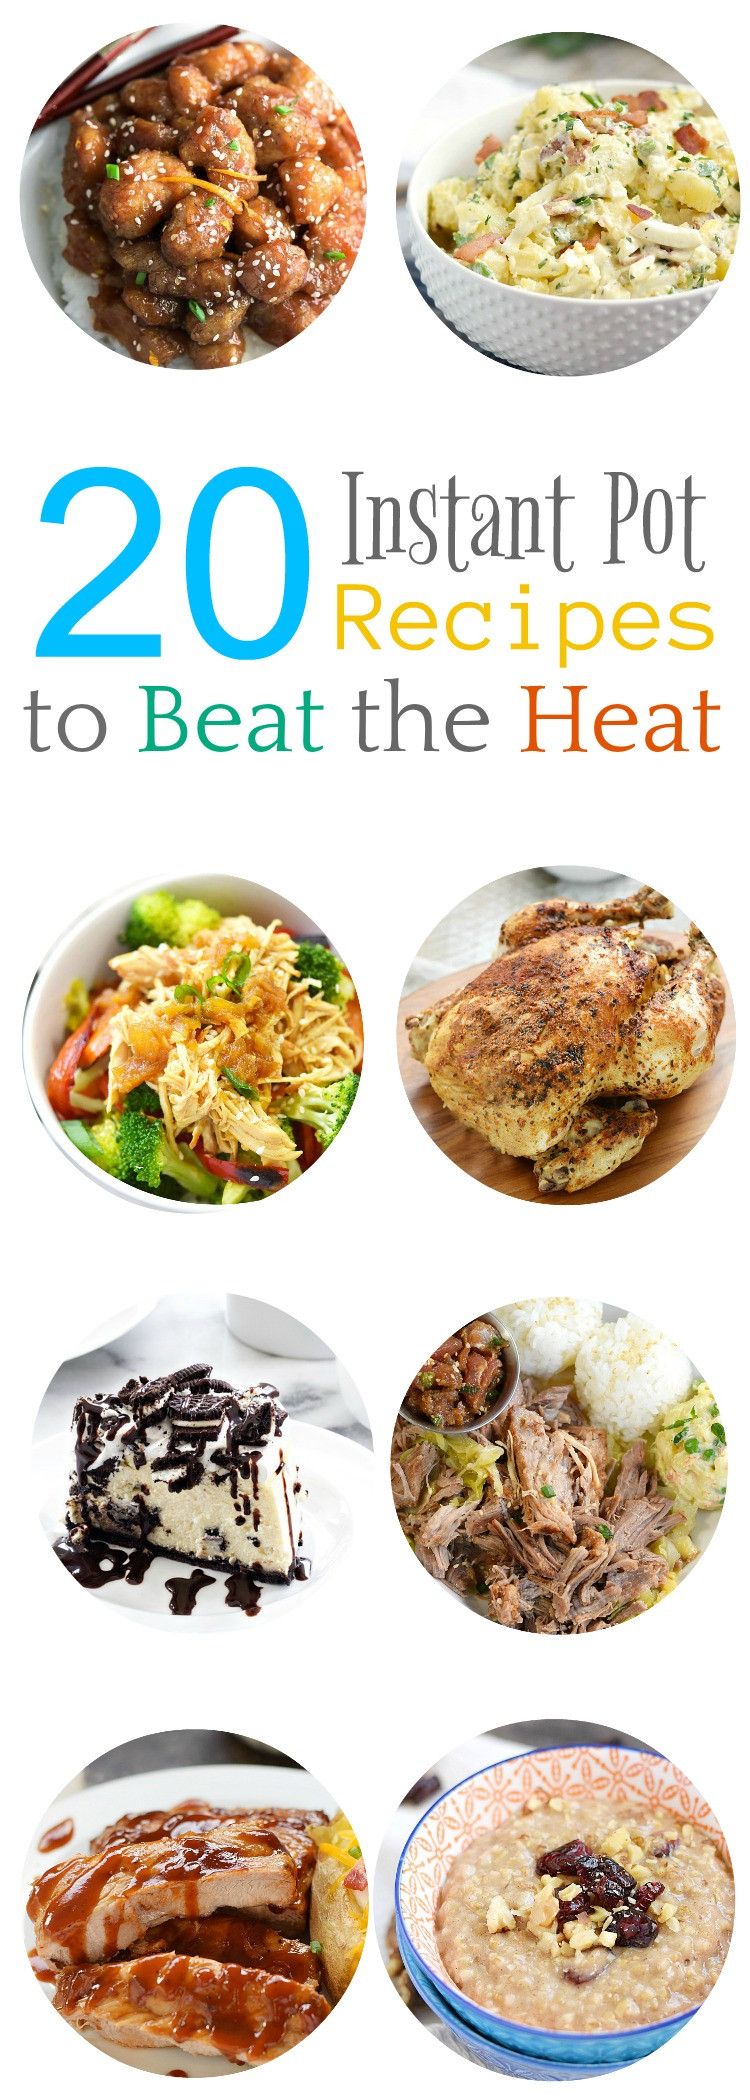 Instant Pot Summer Recipes  20 Instant Pot Recipes to Beat the Heat Cooking With Curls